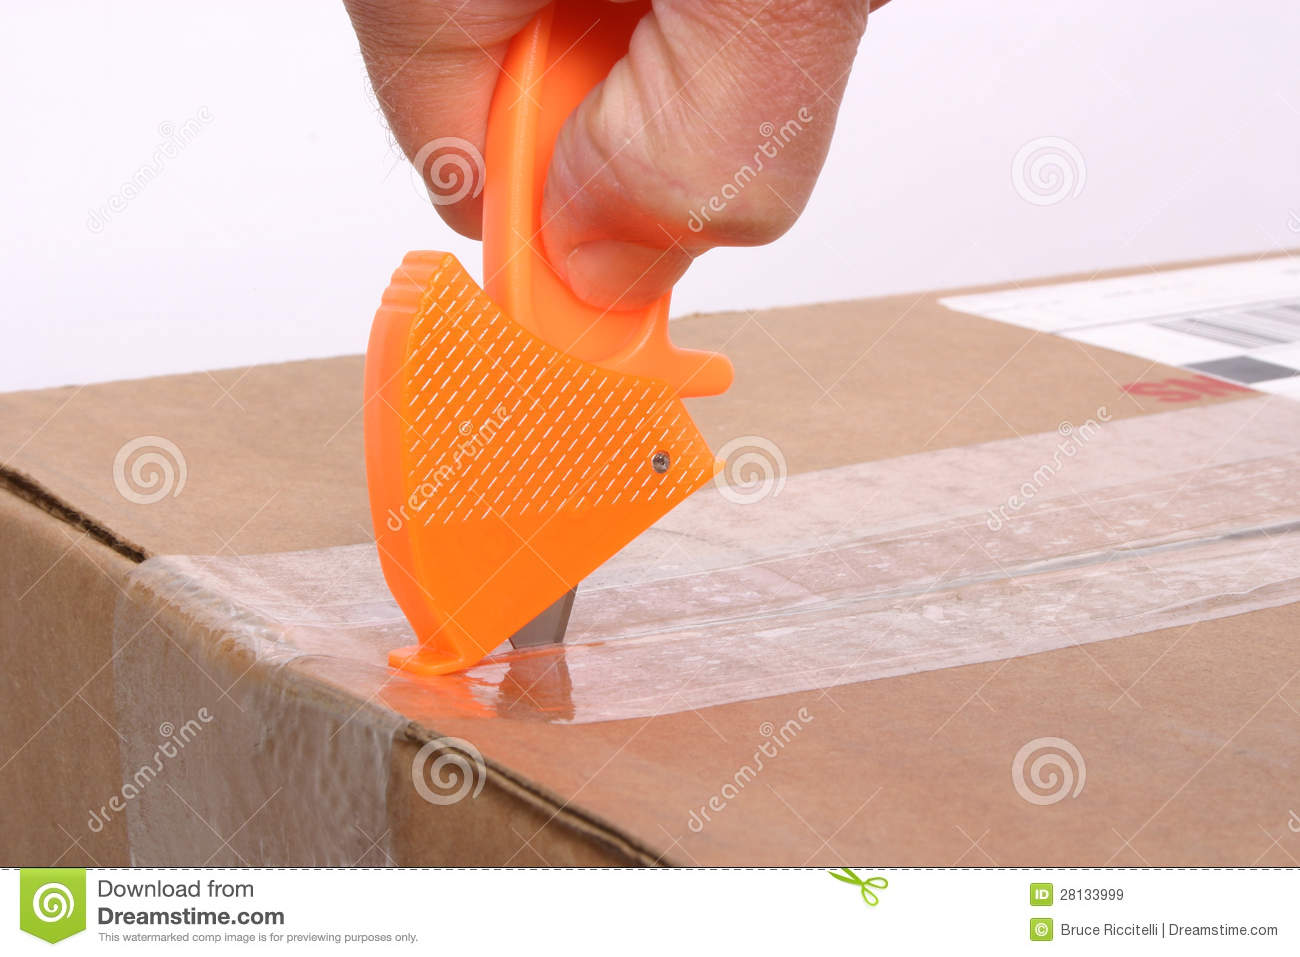 Box Cutter In Use Stock Image Image Of Opening Safety